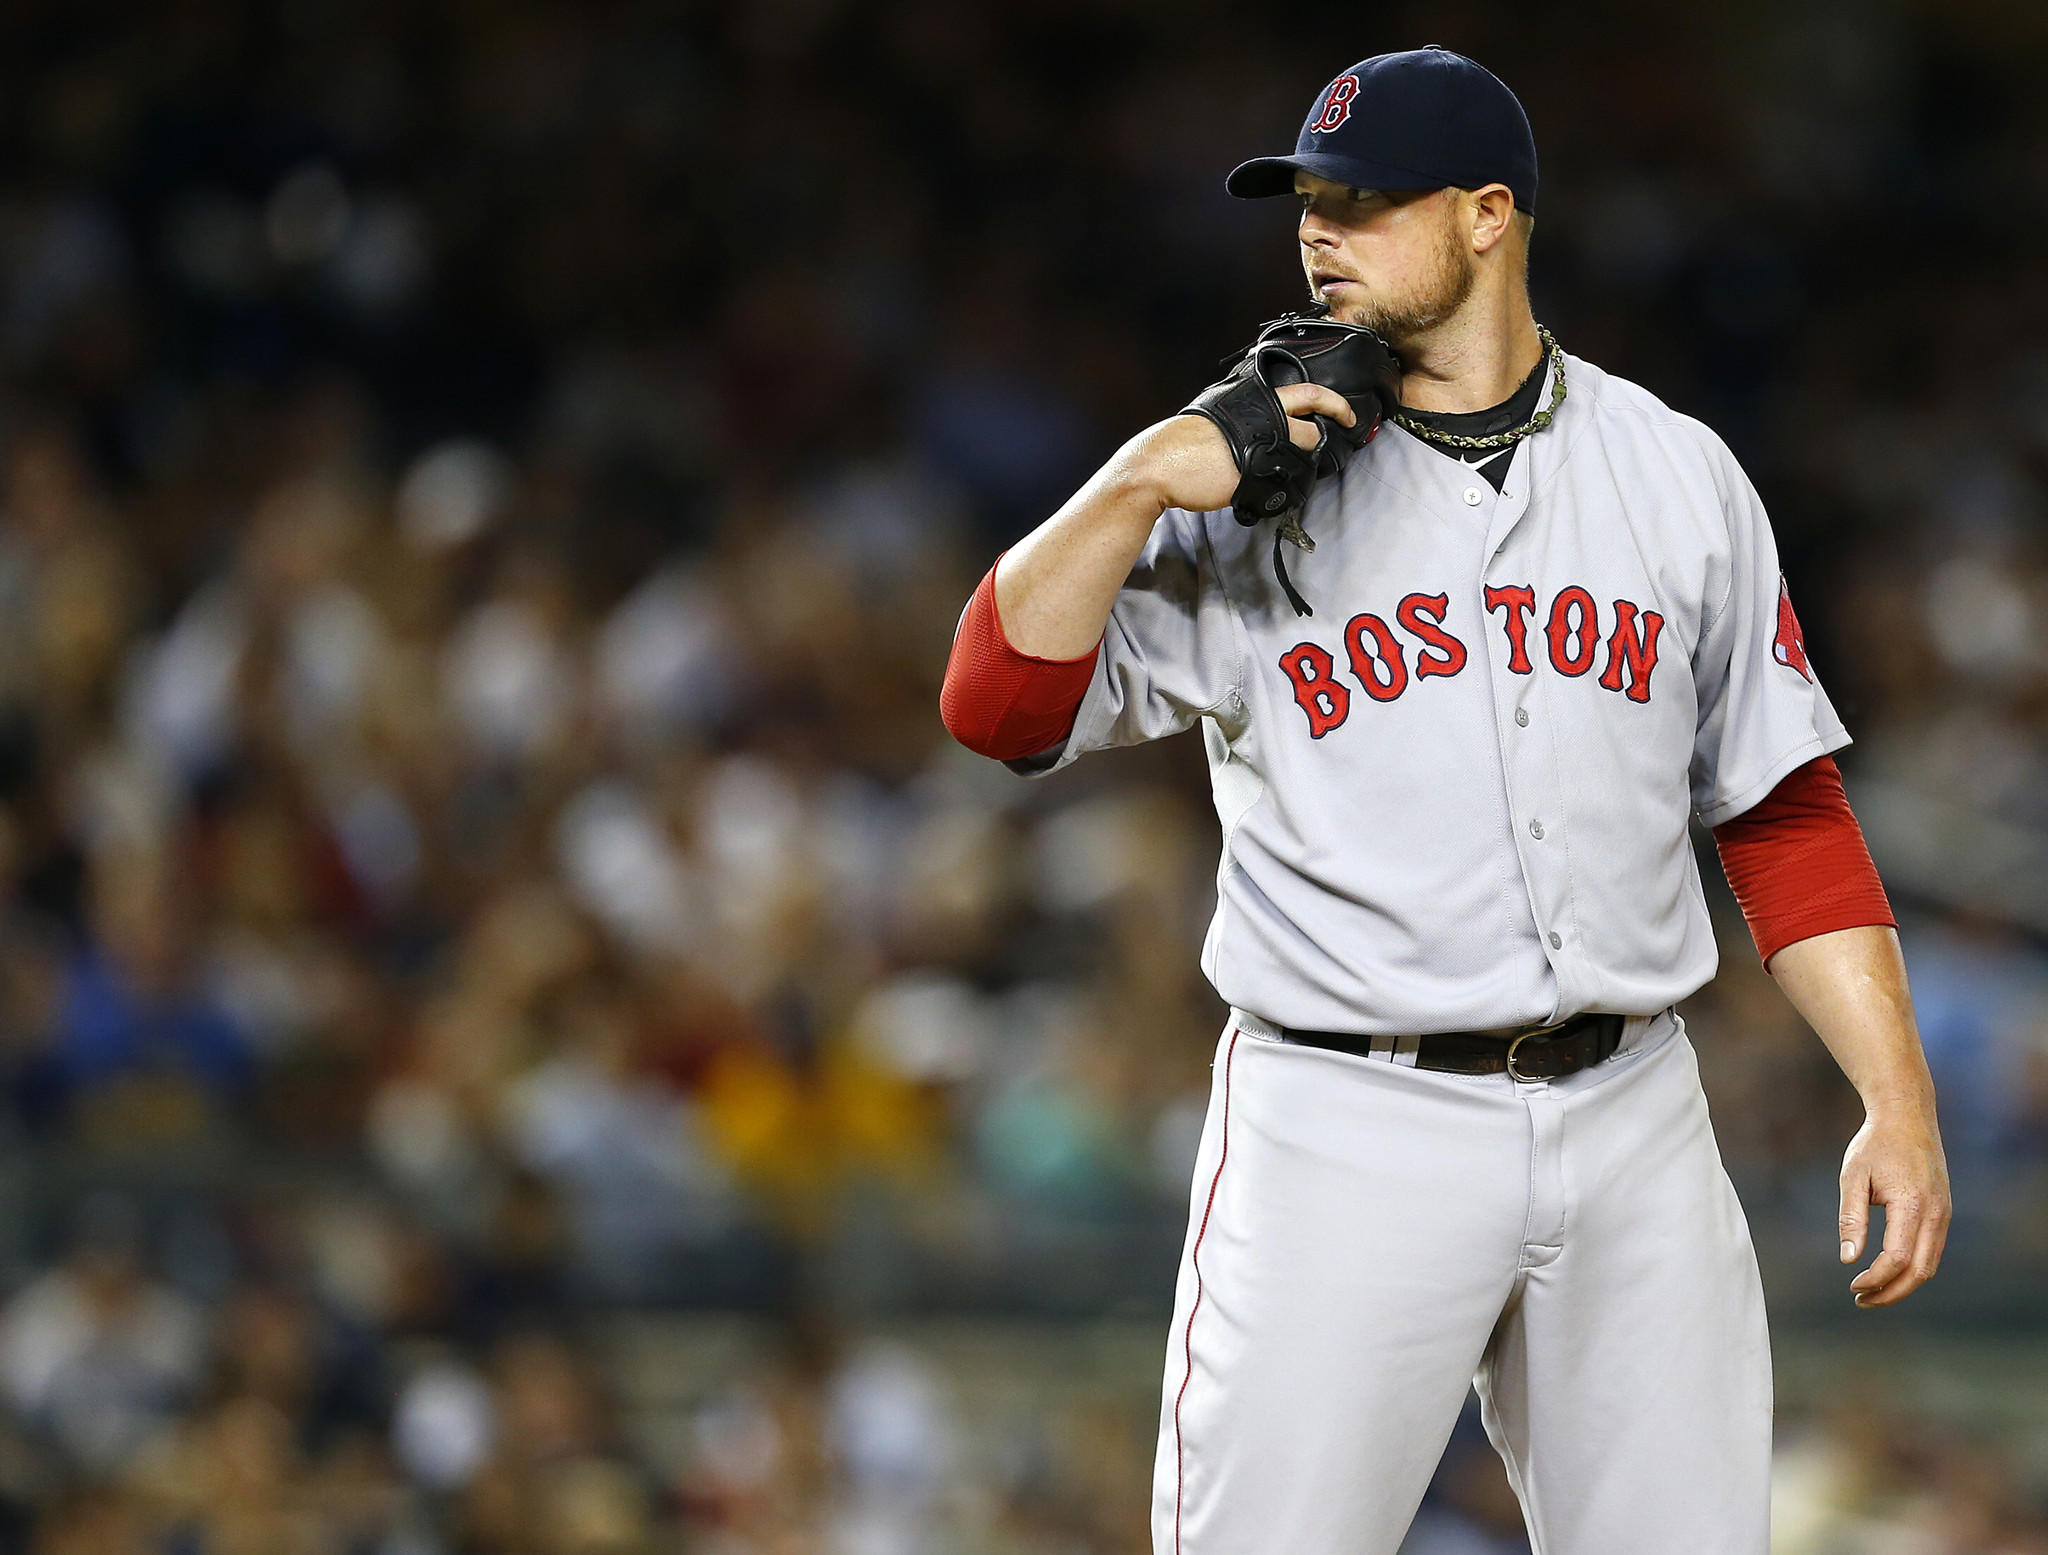 According to reports July 30, 2014, Boston Red Sox starting pitcher Jon Lester has been pulled from his July 30, start, one day before the trade deadline.